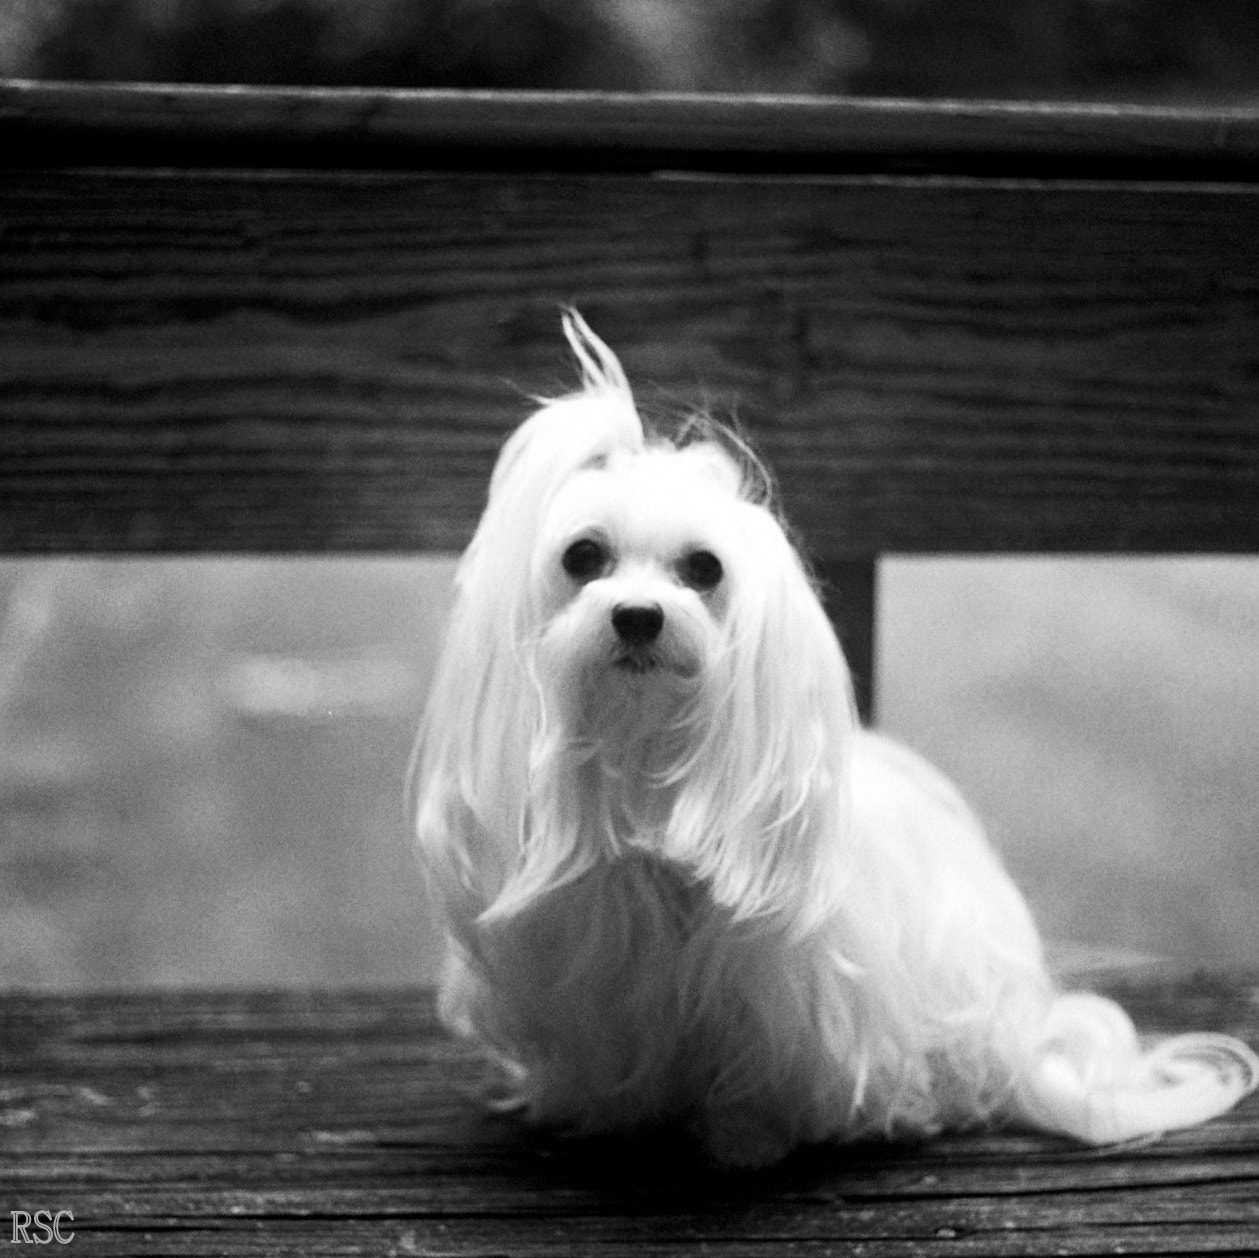 Photograph Posing Waiting Maltese Black And White Portraitt by Robin Sing-Cunningham on 500px